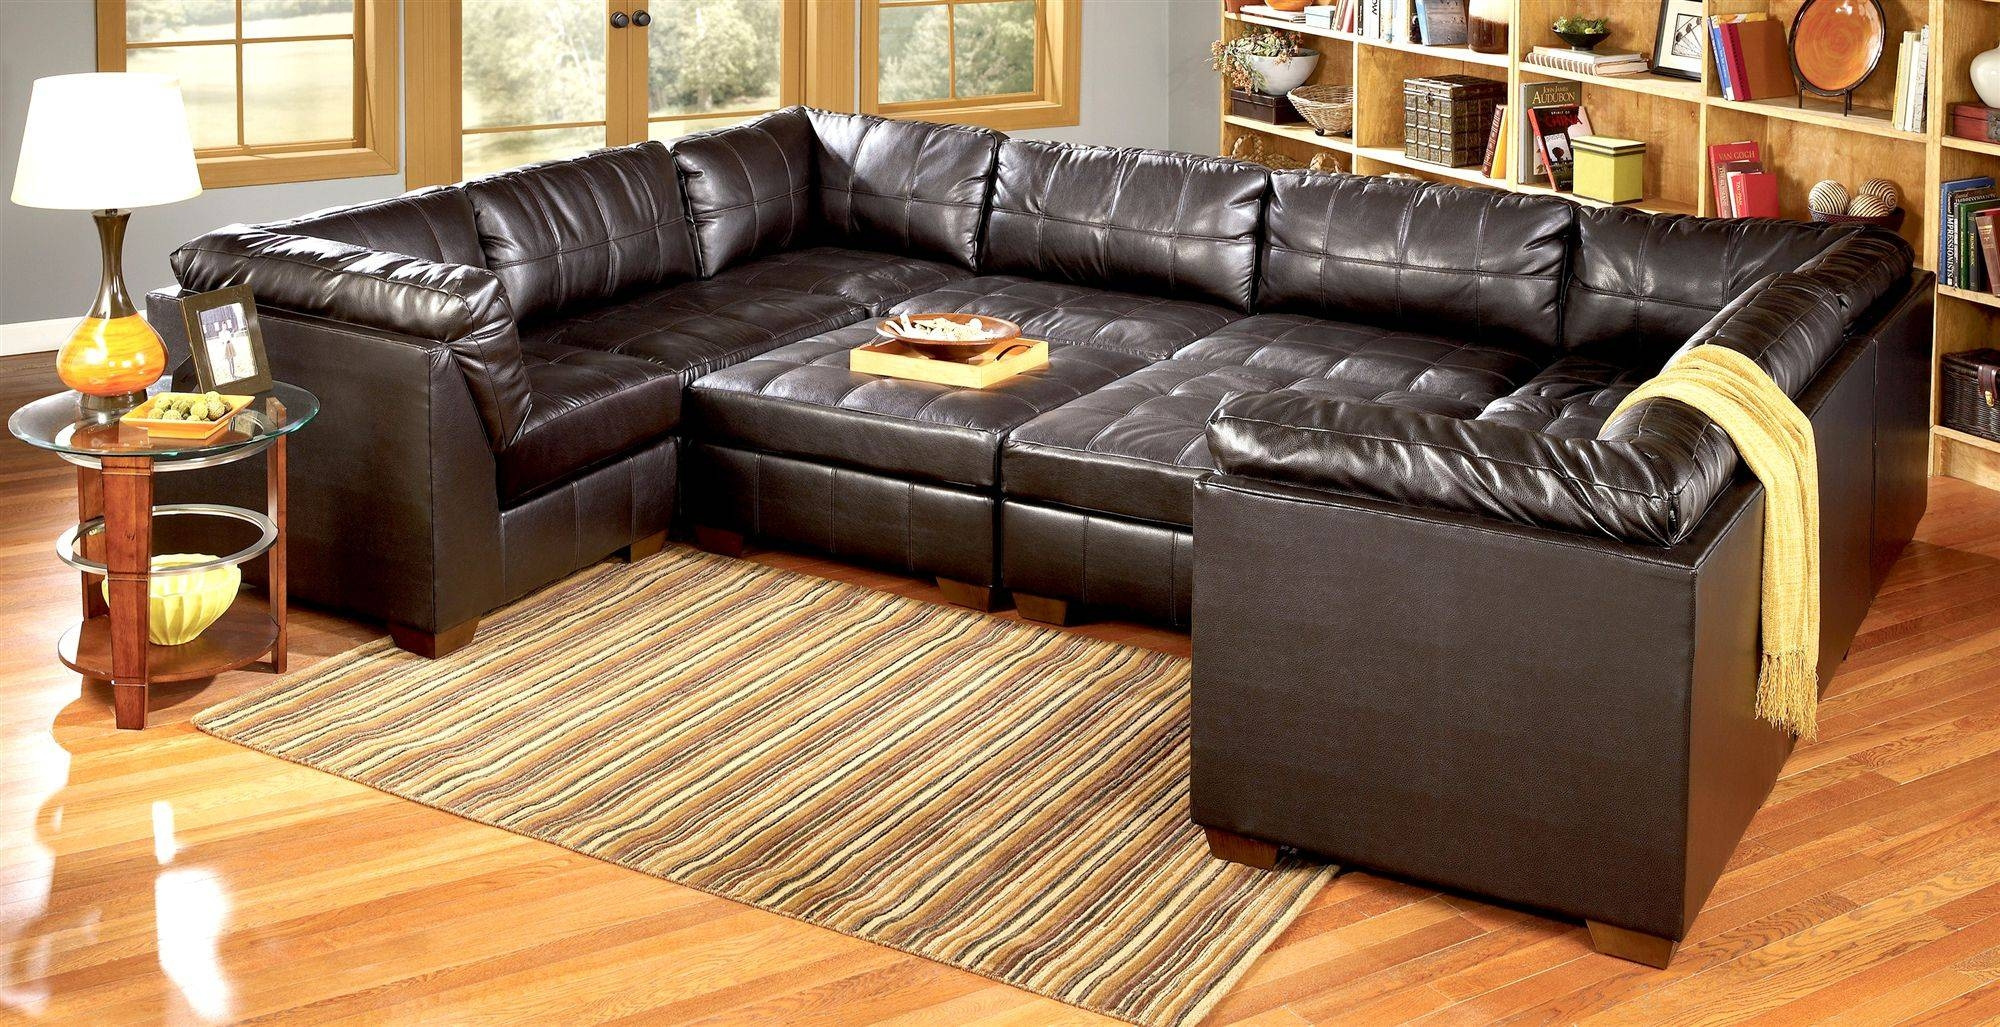 30 The Best Black Leather Sectional Sleeper Sofas